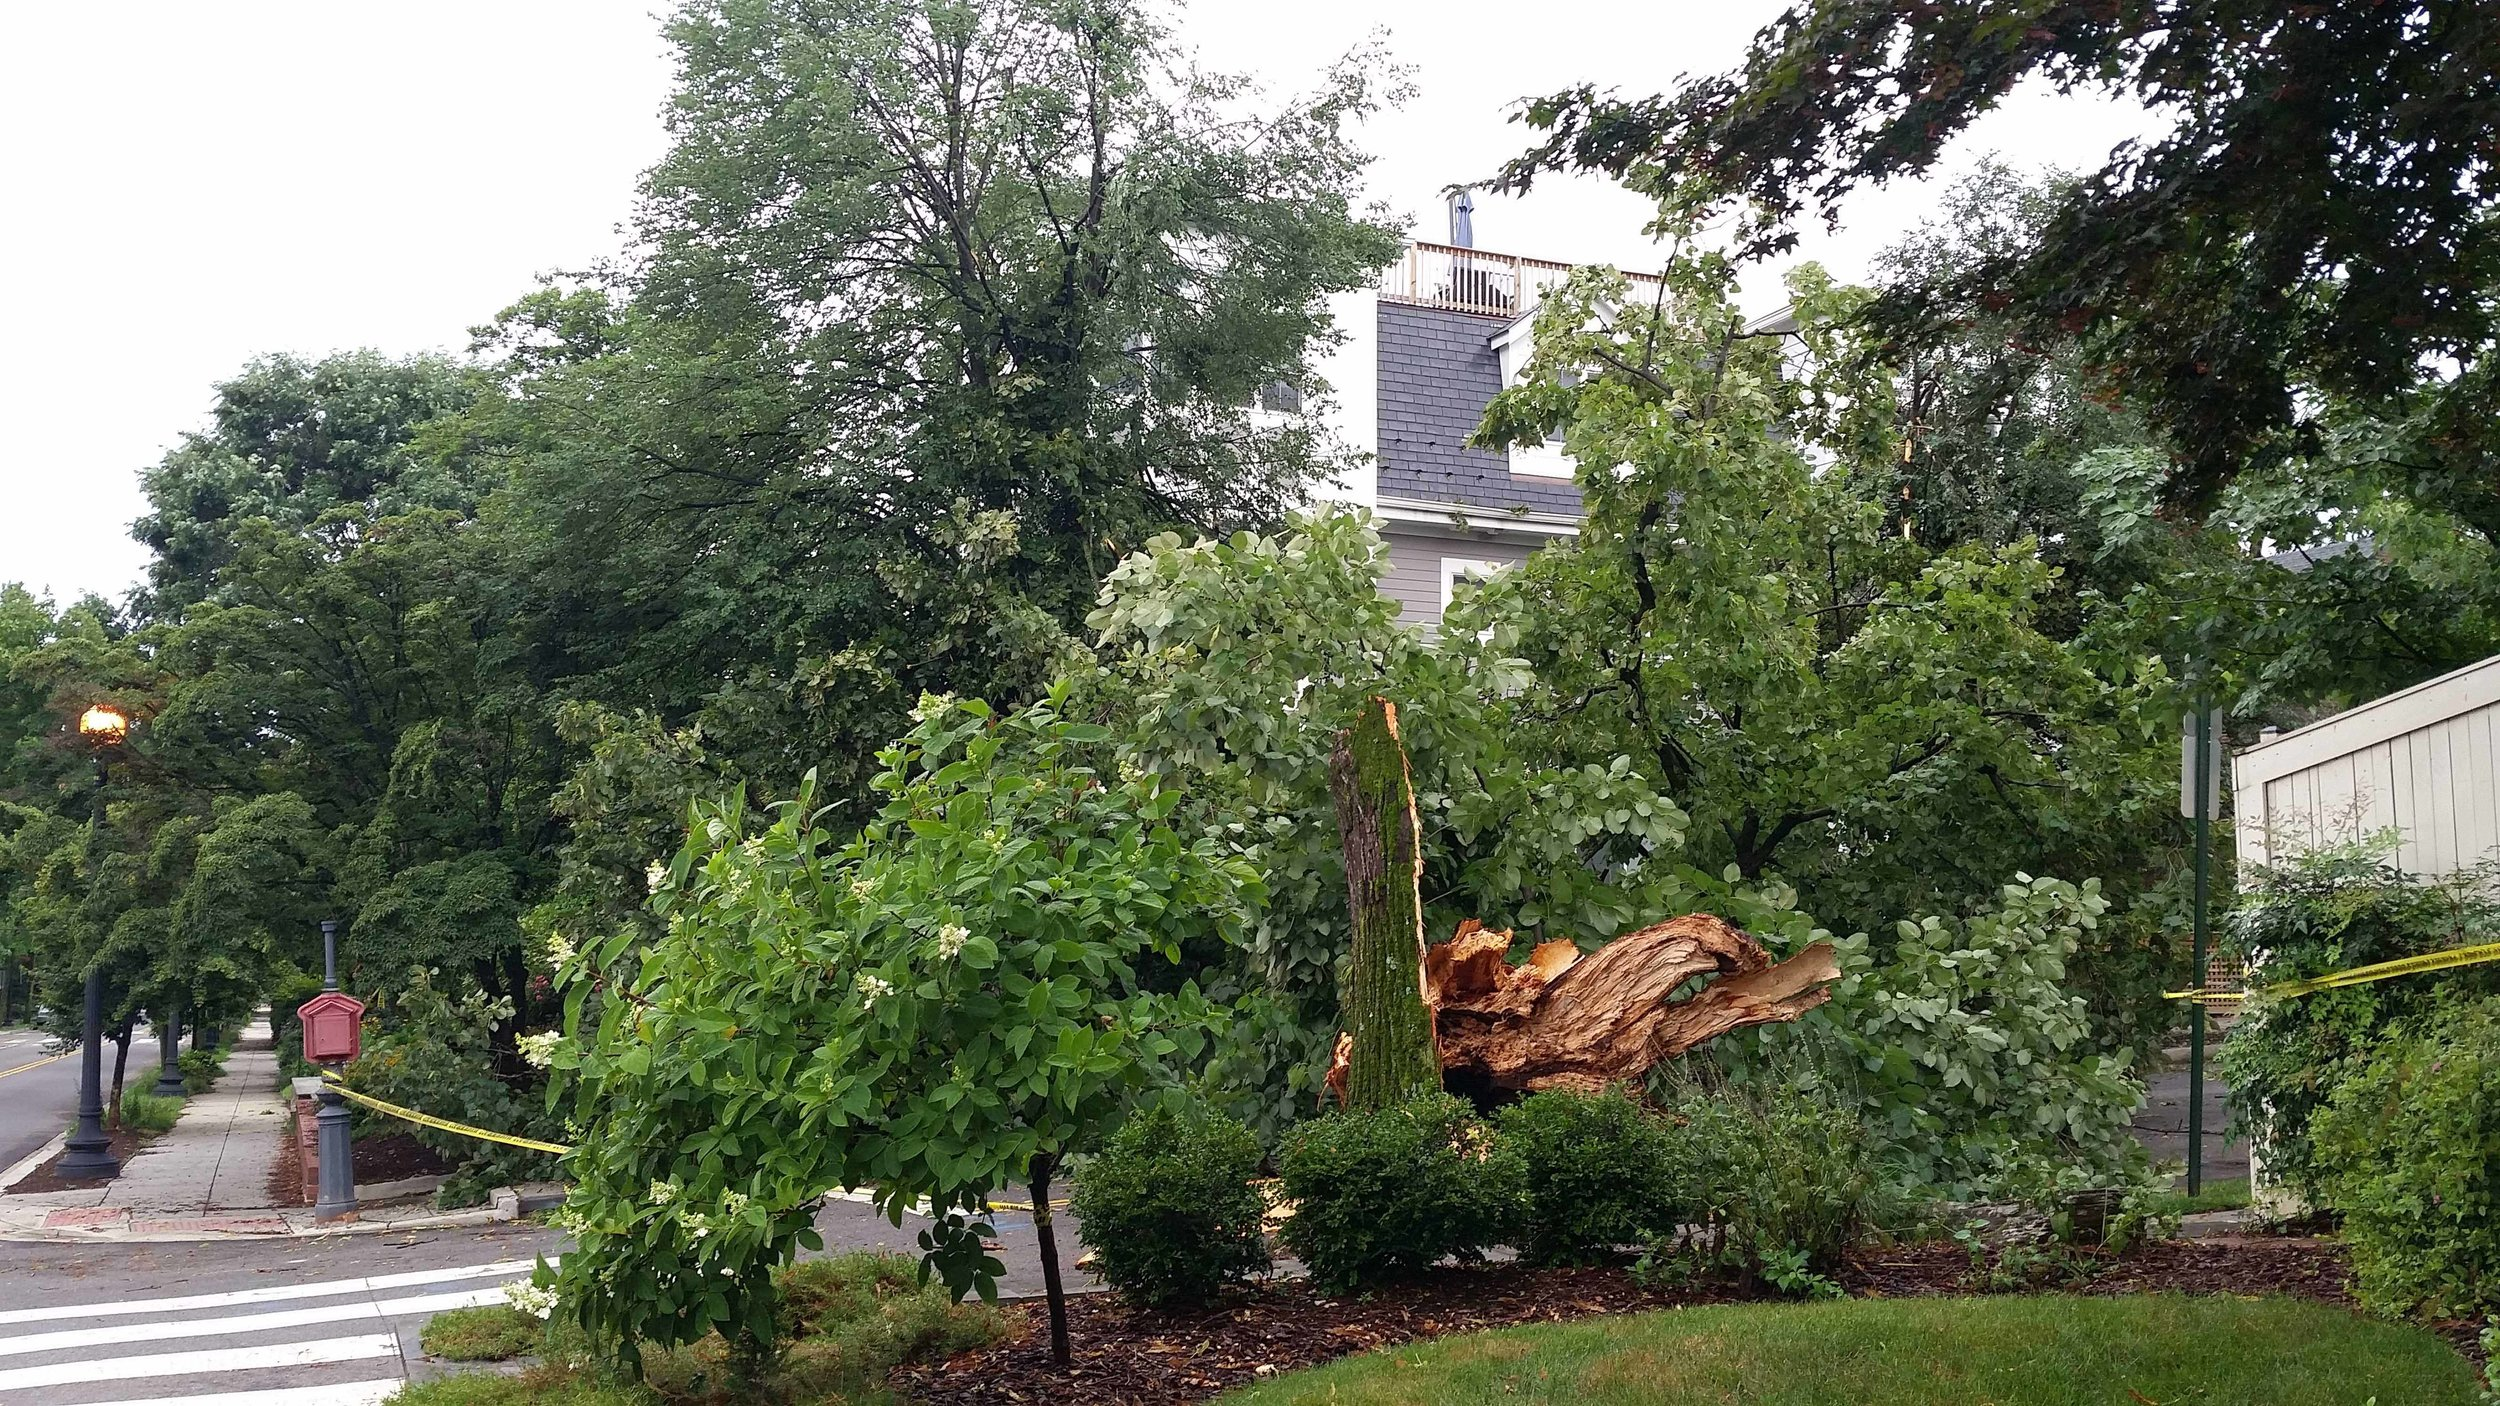 A storm on July 6 knocked down a tree on the corner of 37th and T, which broke a window and partially destroyed a fence at the house across the street.